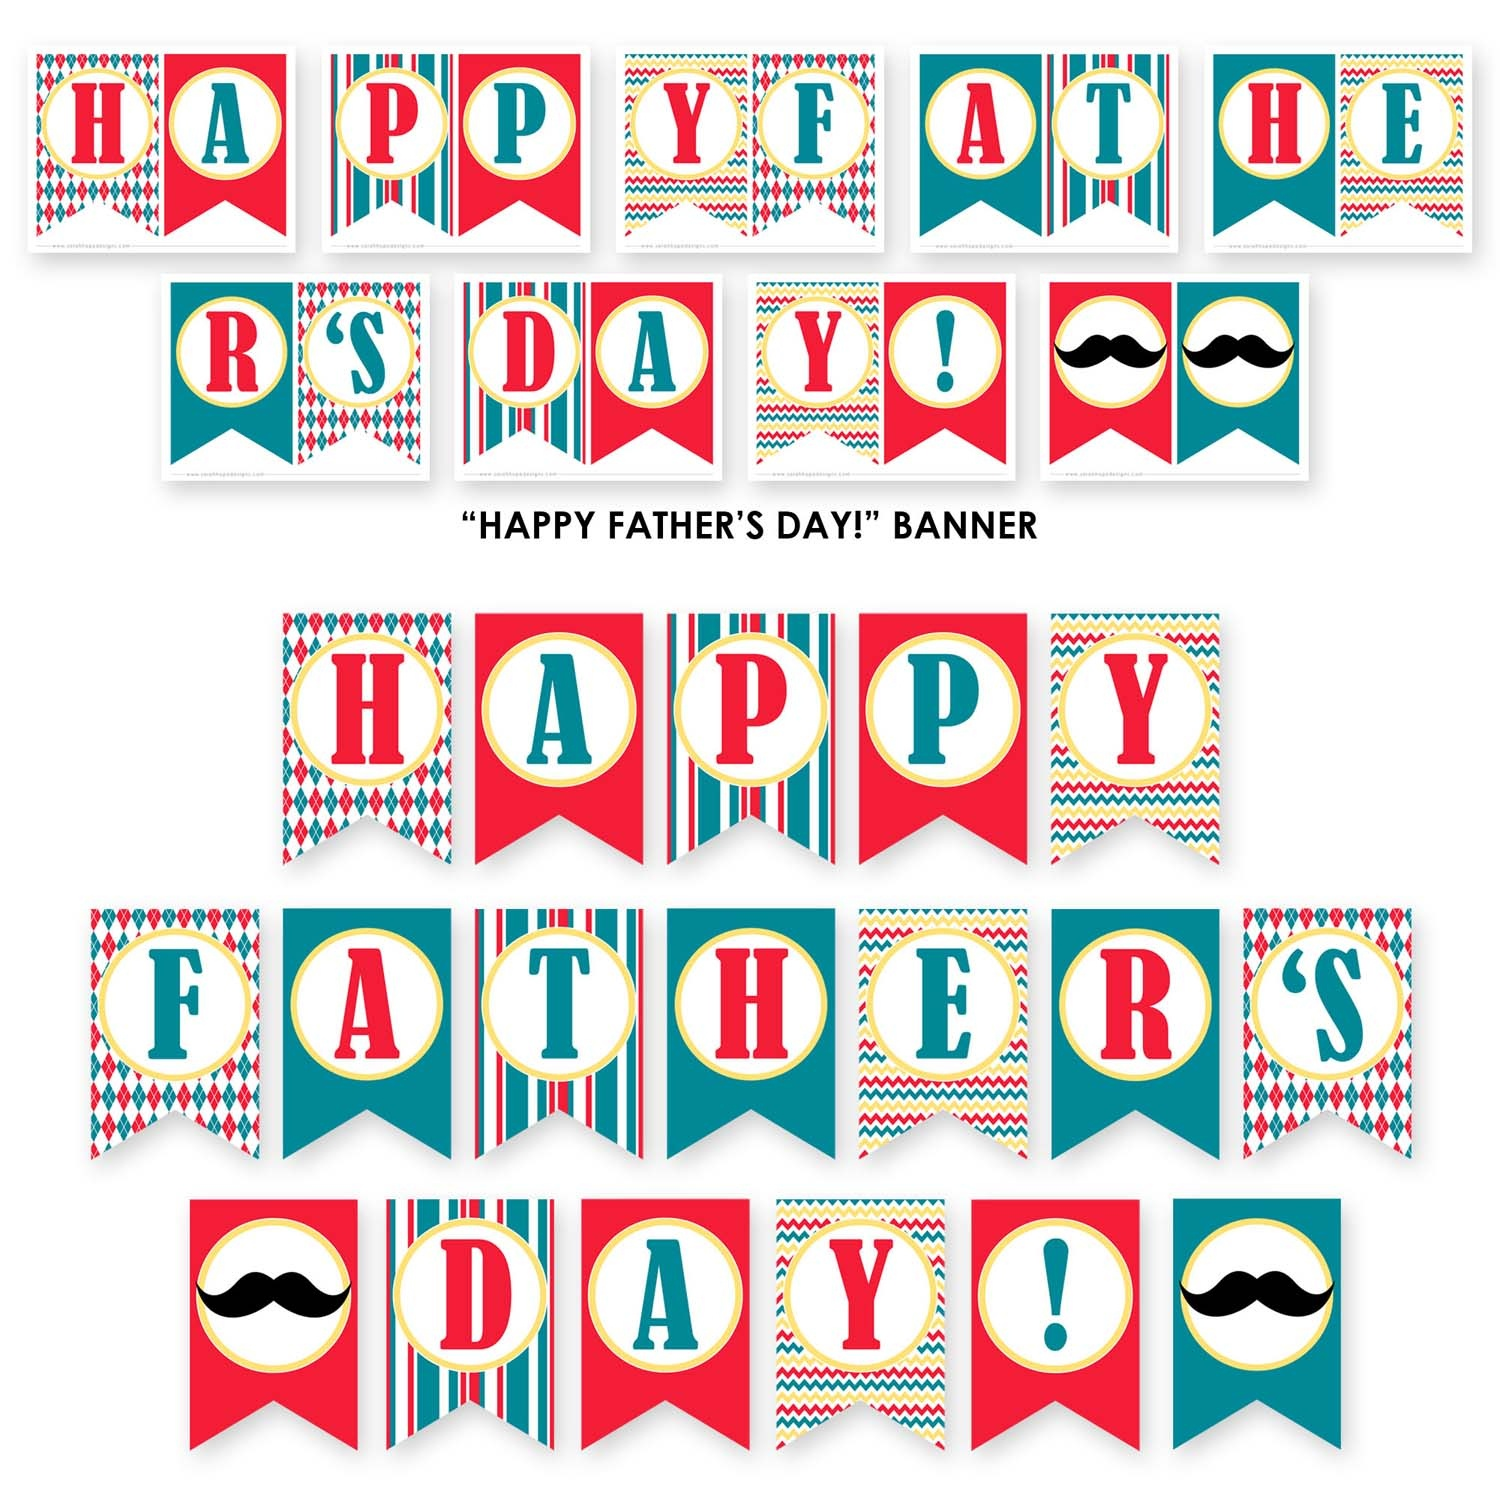 Free Father's Day Party Printables From Sarah Hope Designs   Catch - Free Printable Fathers Day Banners